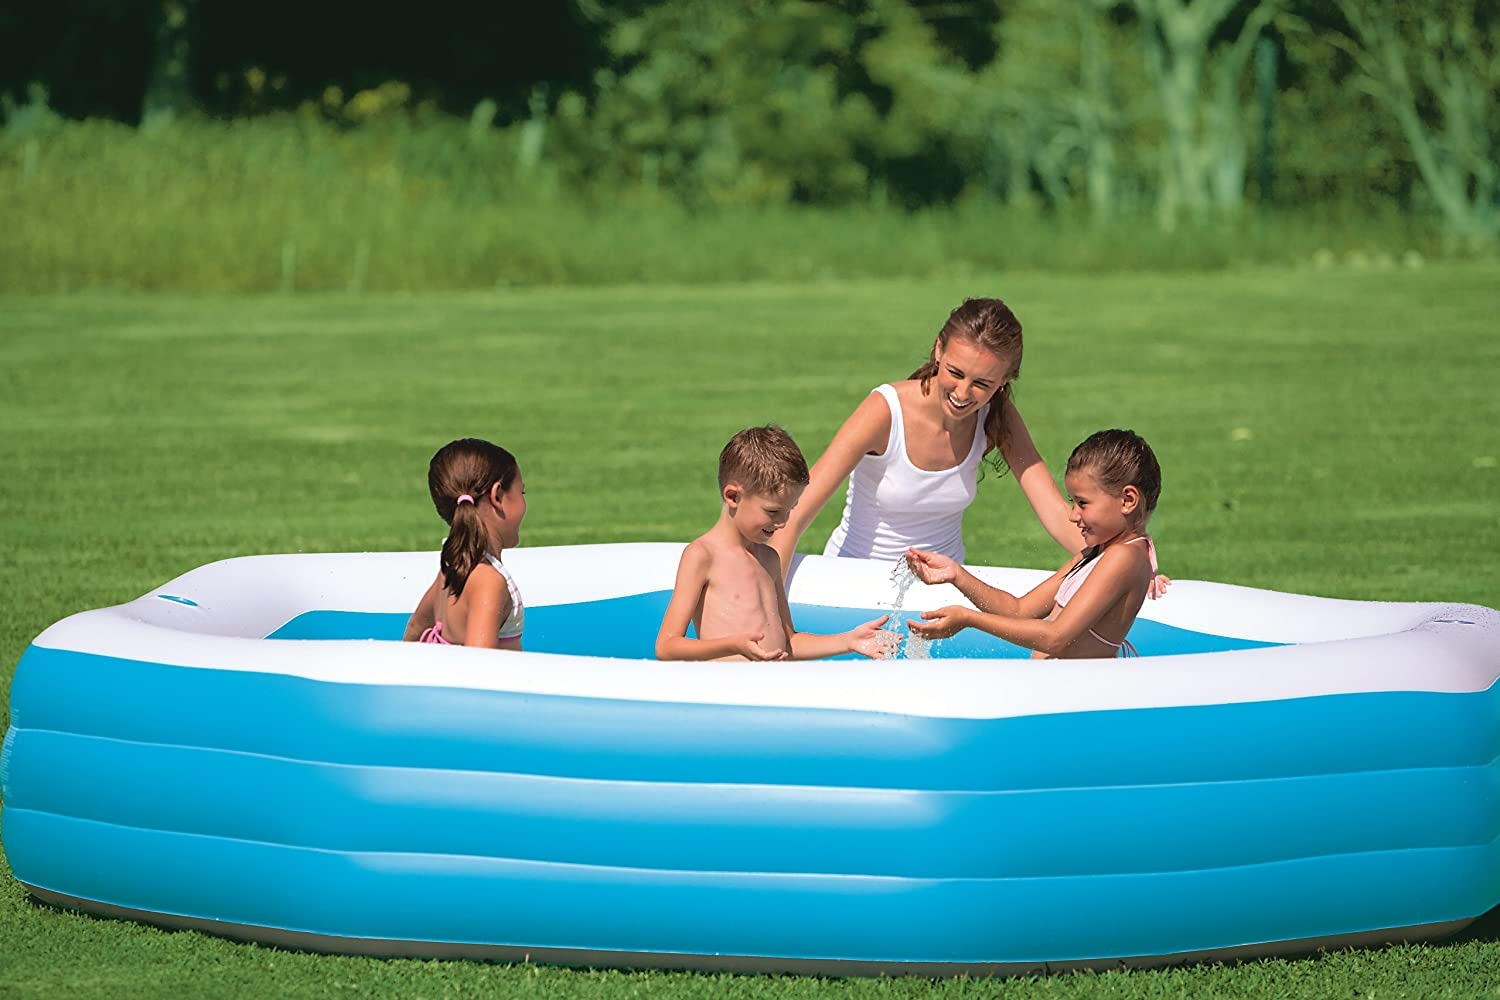 Piscine gonflable octogonale for Piscine gonflable geante